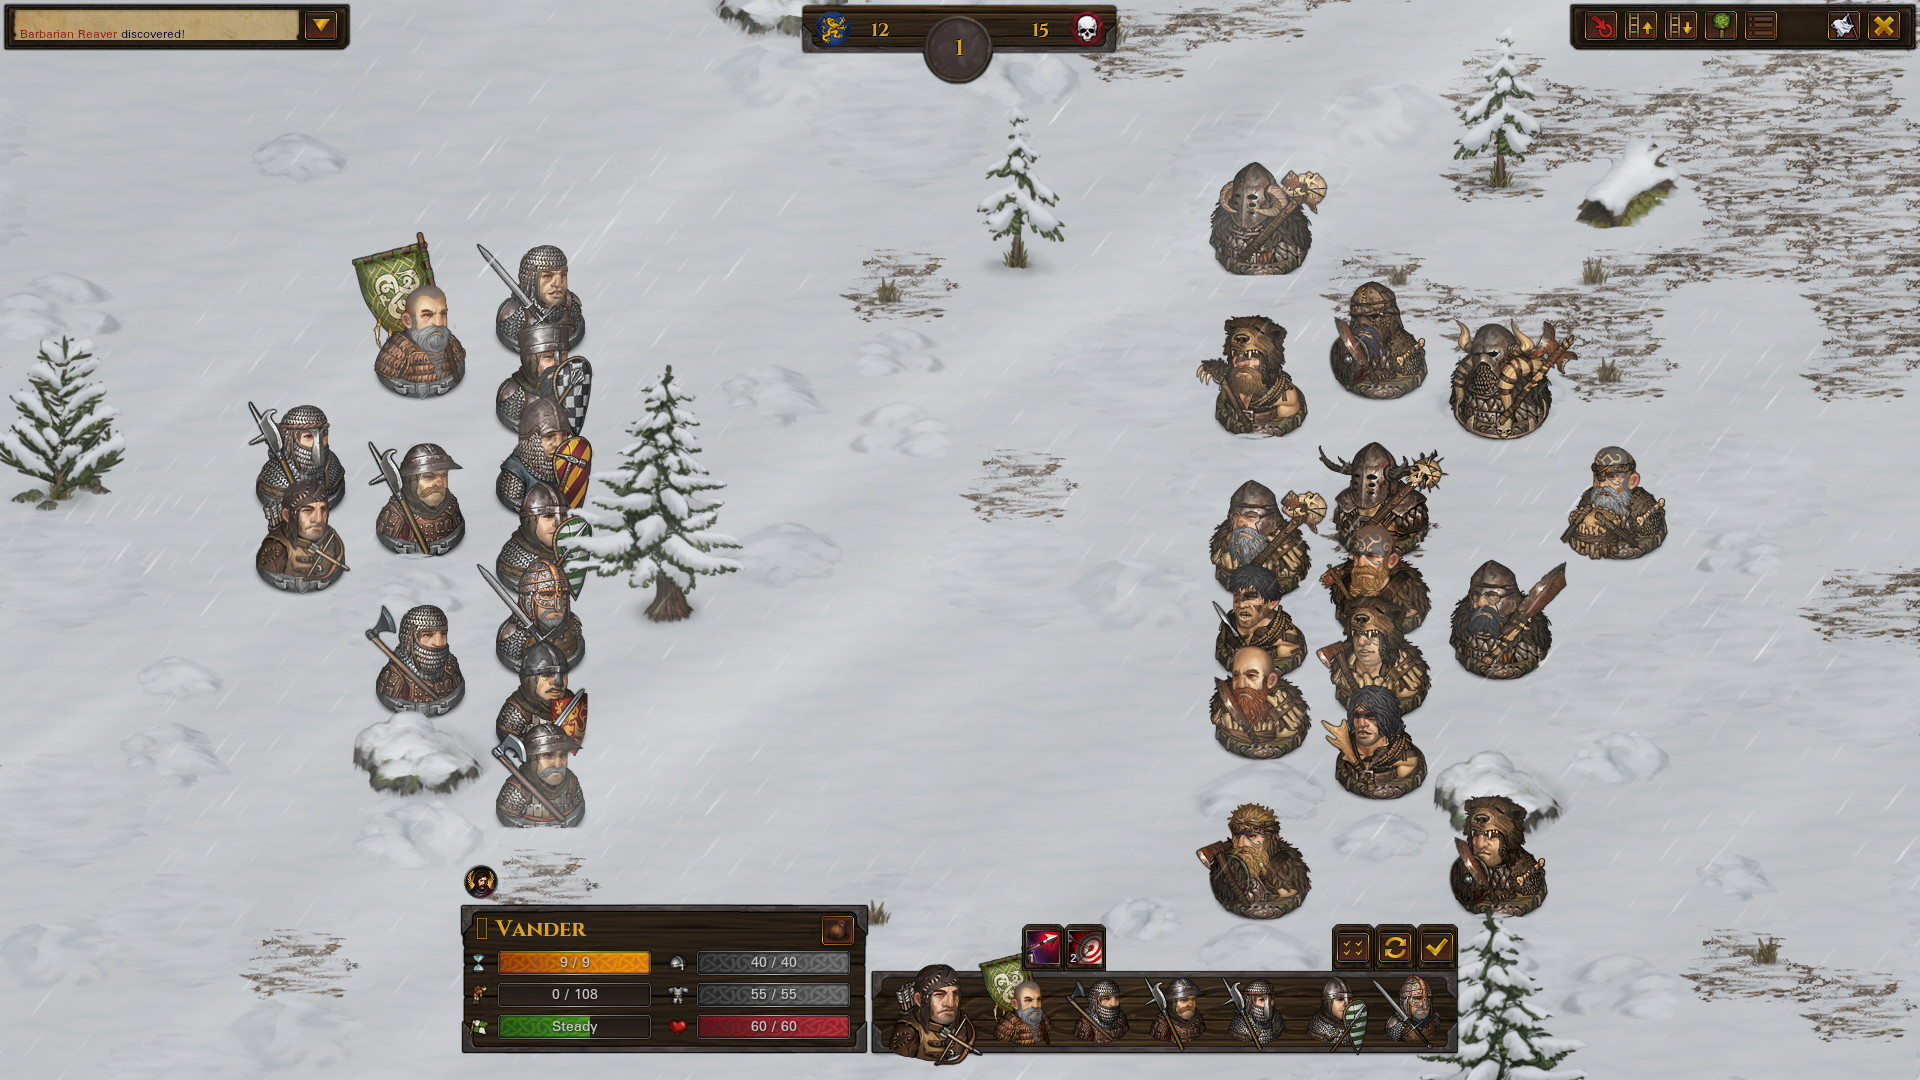 Battle Brothers: Warriors of the North - screenshot 3